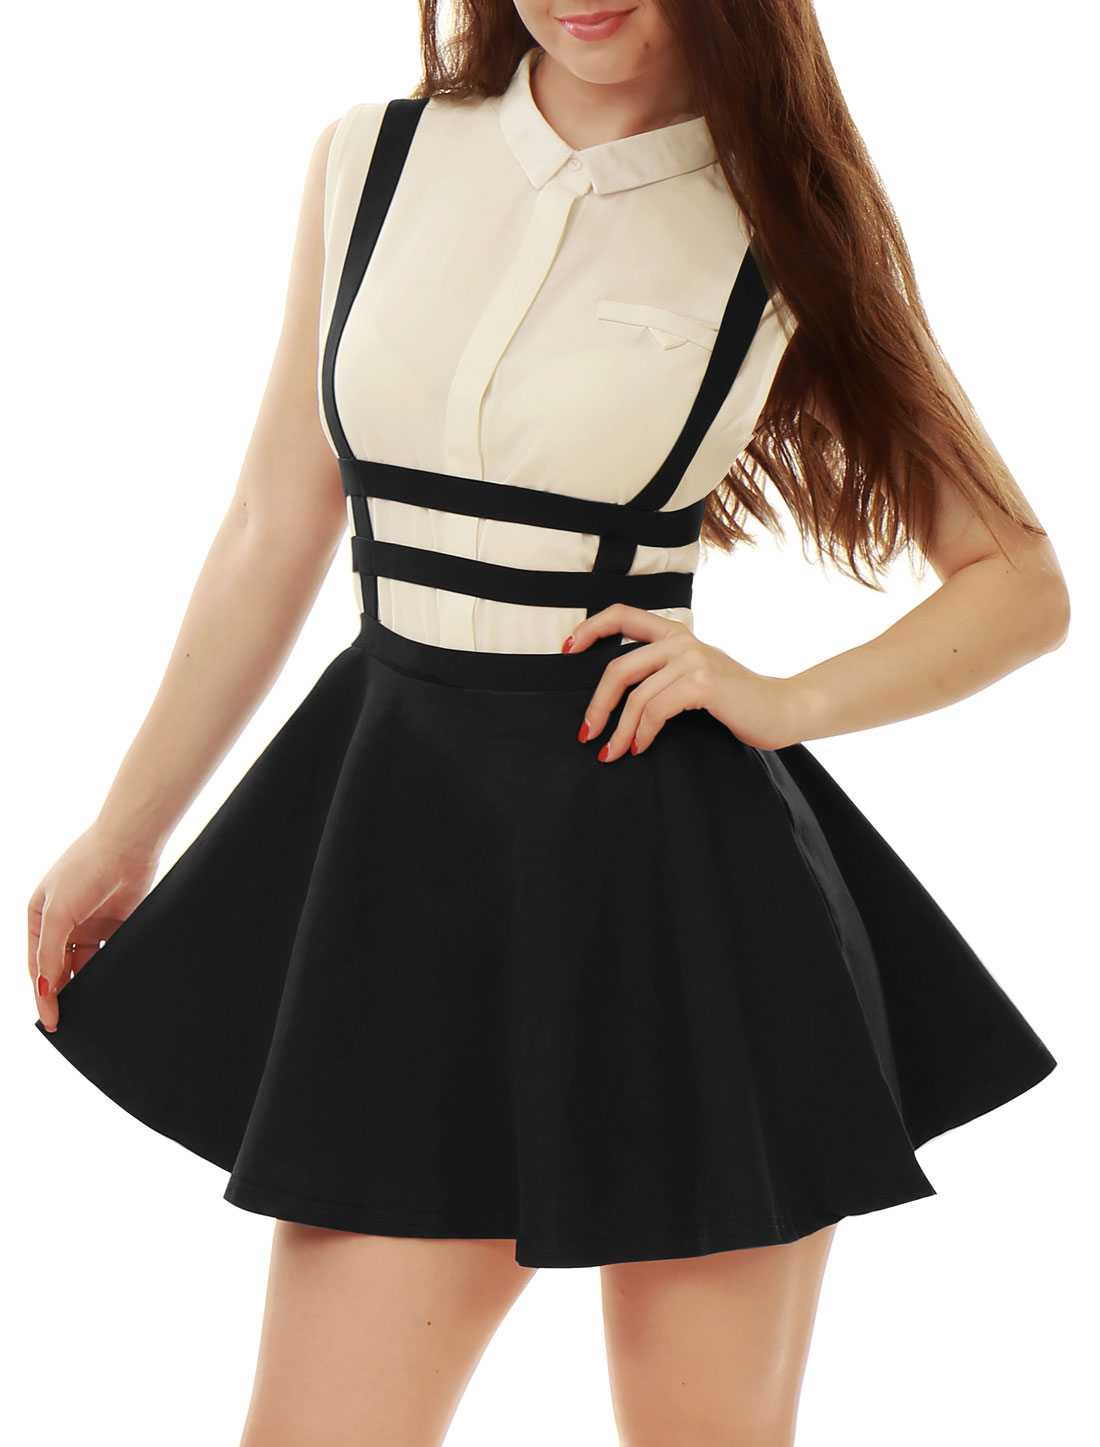 Lady Elastic Waist Zipper Back Stretch Straps Cut Out Detail Suspender Skirt Black S